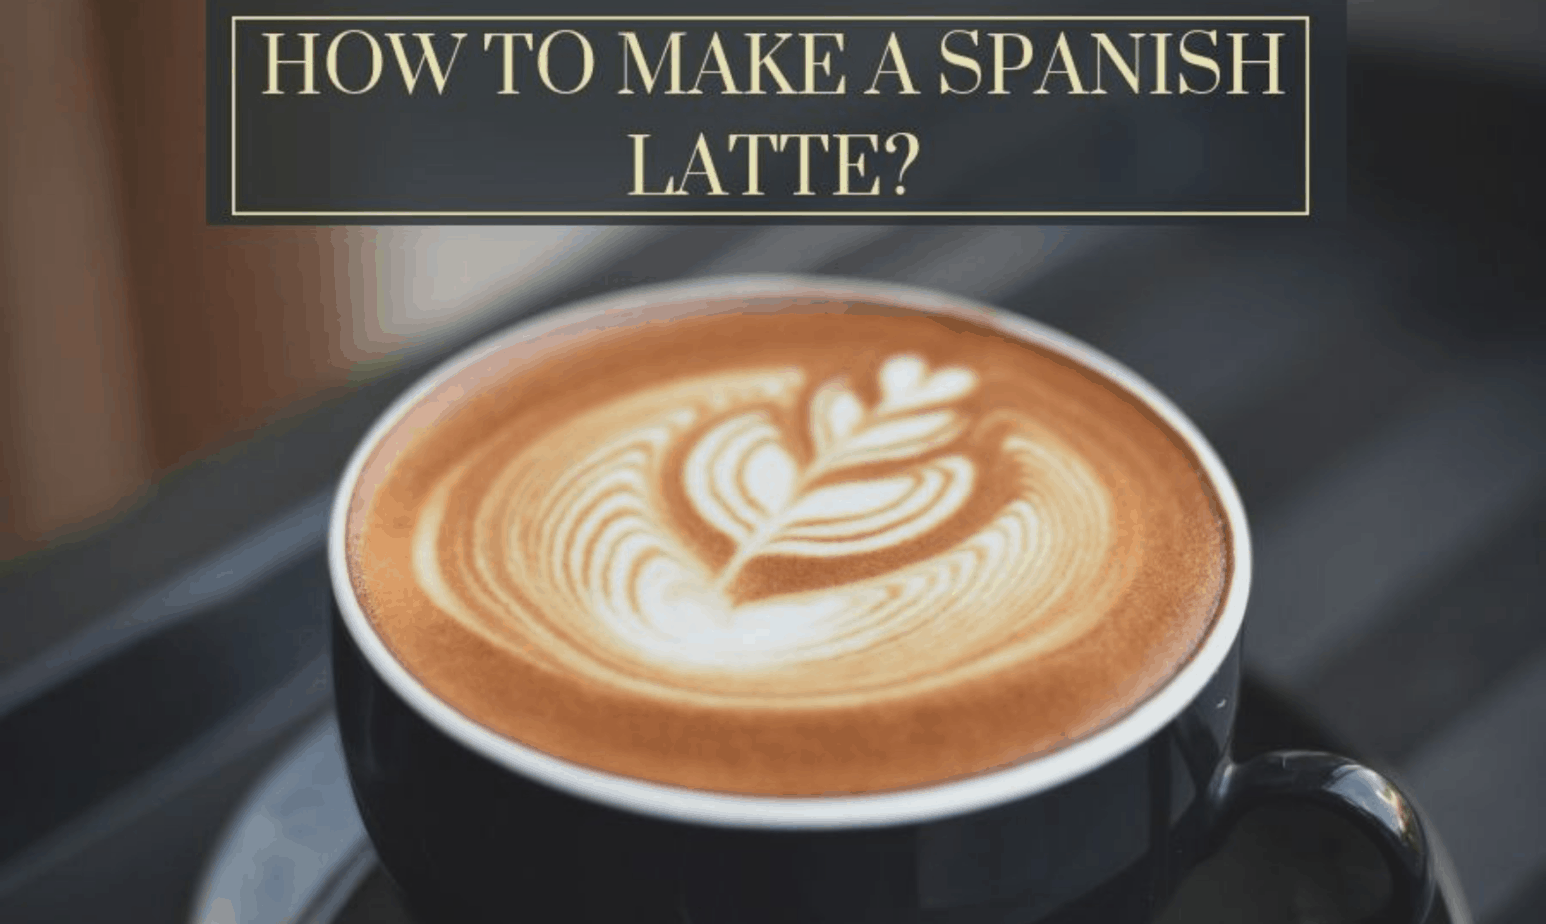 How to Make a Spanish Latte? Spanish Latte Recipes